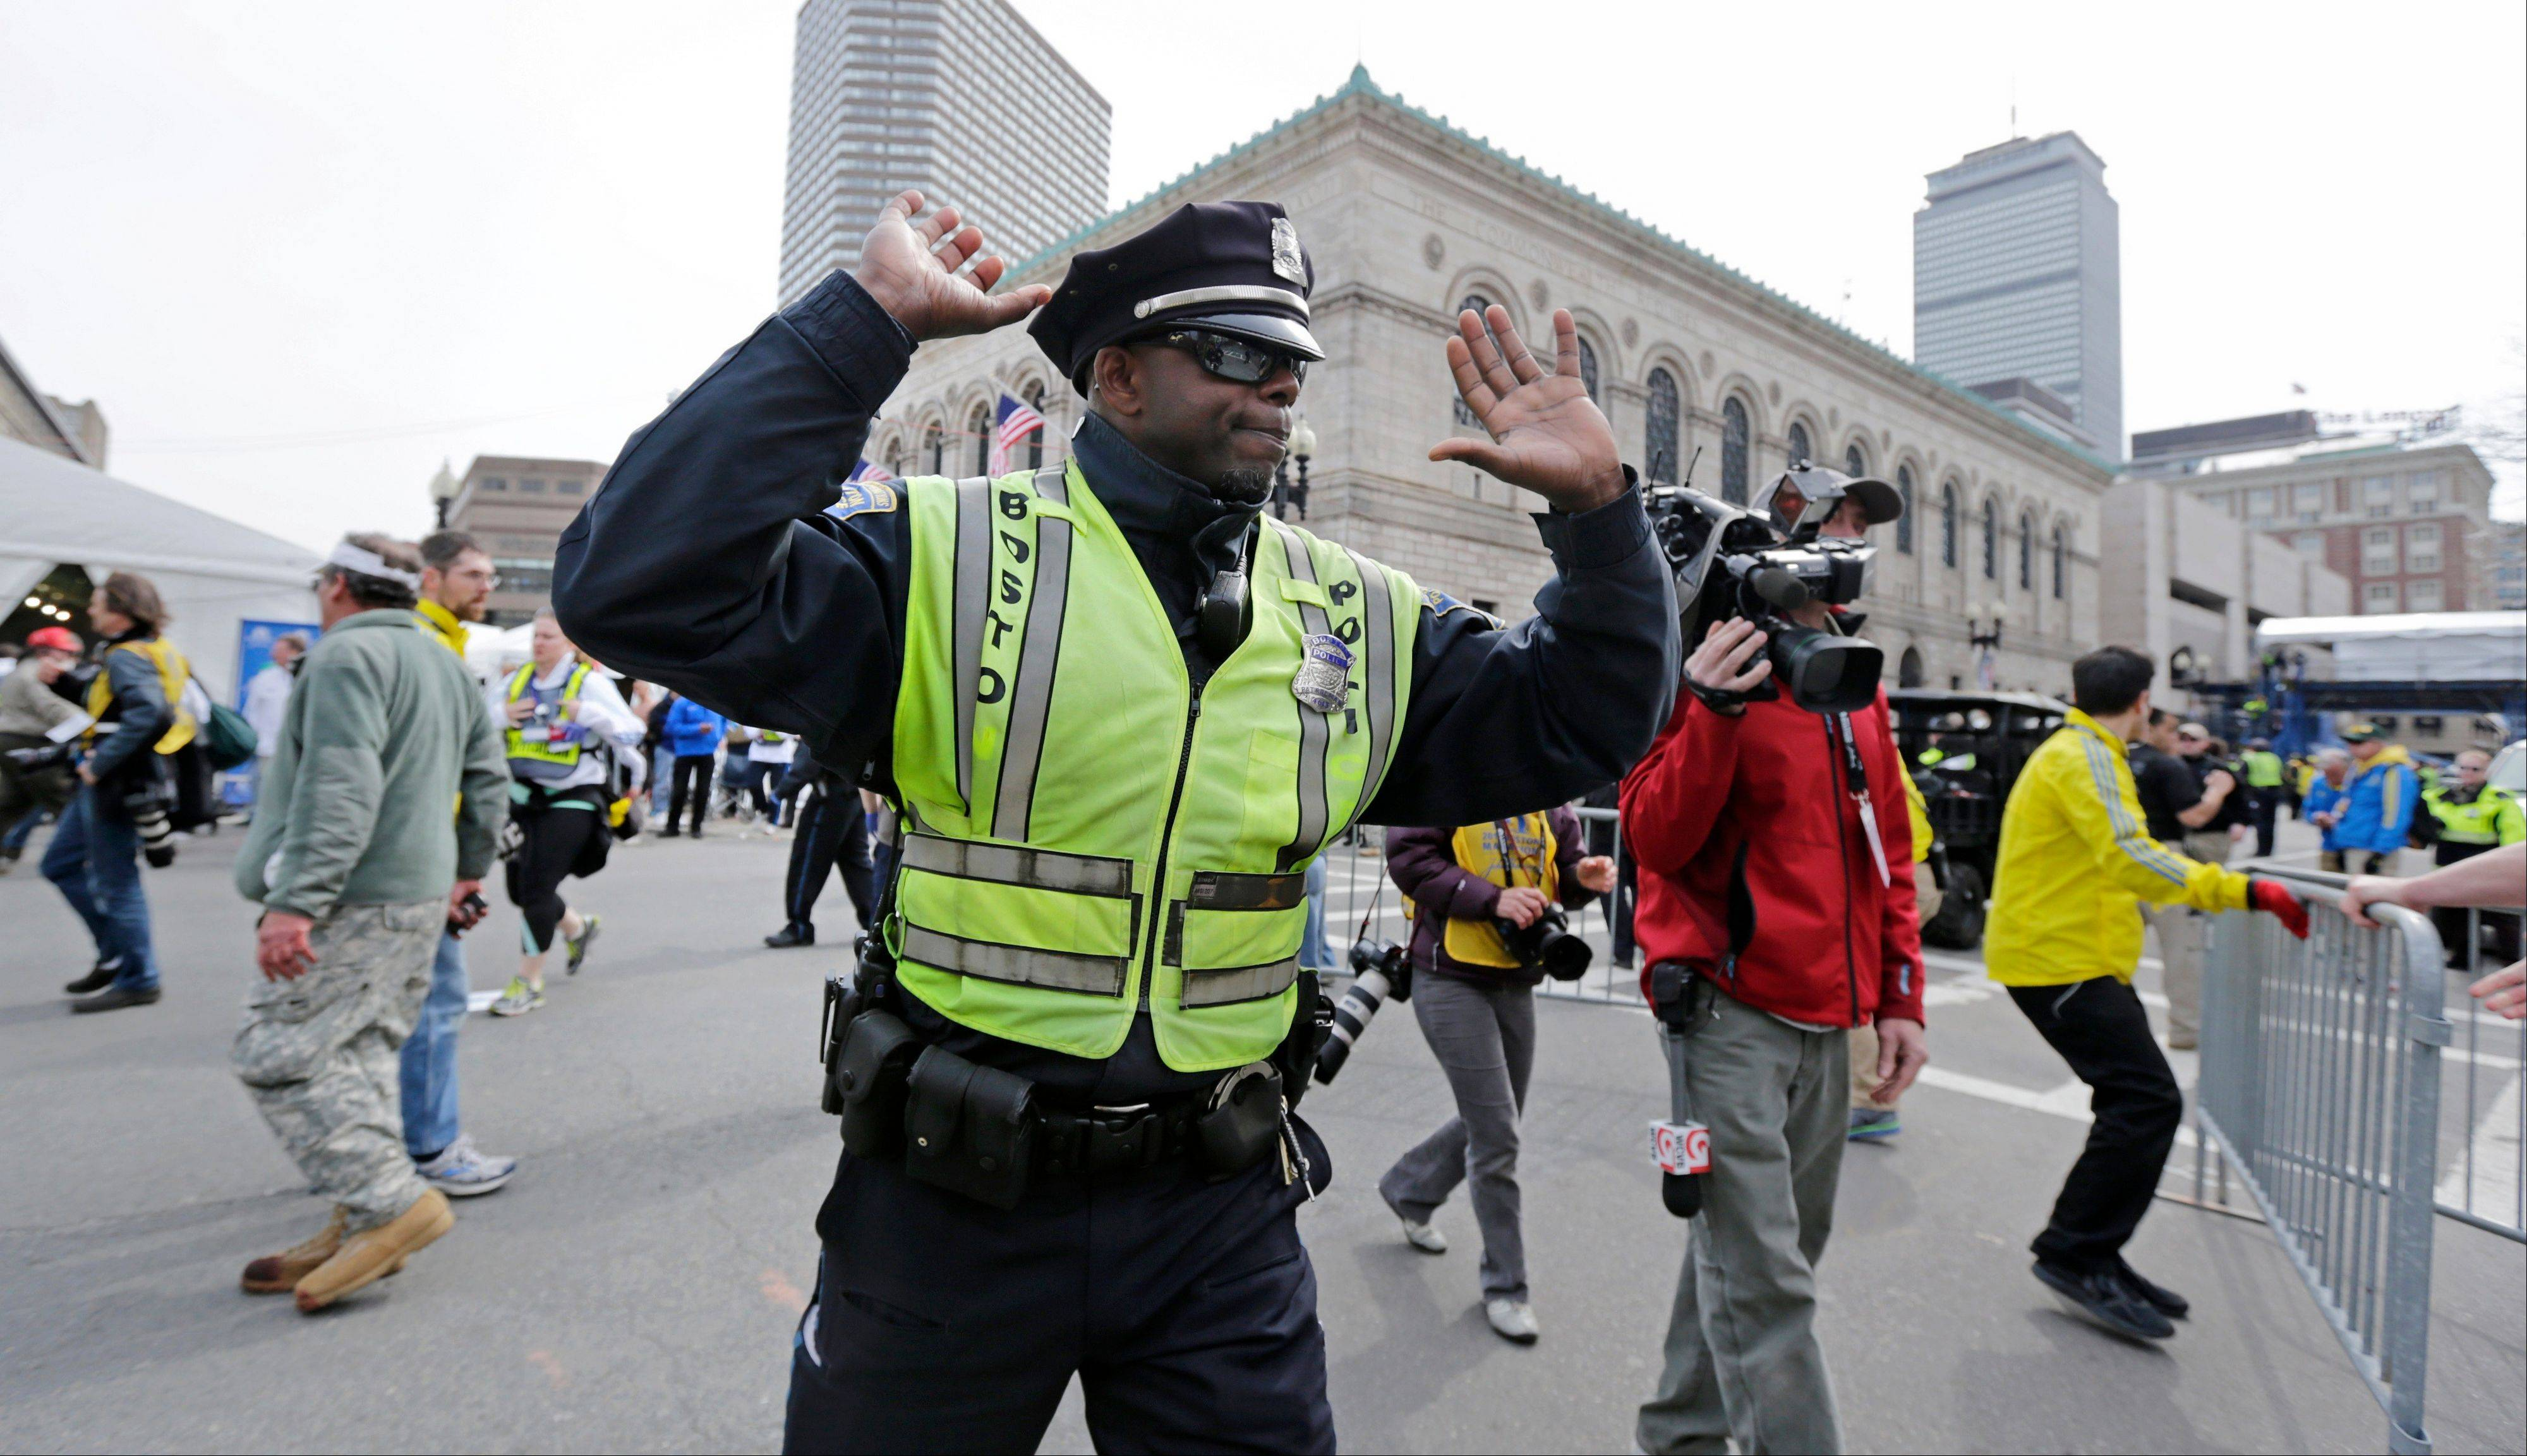 A Boston police officer clears Boylston Street following an explosion at the finish line of the 2013 Boston Marathon in Boston, Monday, April 15, 2013. Two explosions shattered the euphoria at the finish line on Monday, sending authorities out on the course to carry off the injured while the stragglers were rerouted away from the smoking site of the blasts.